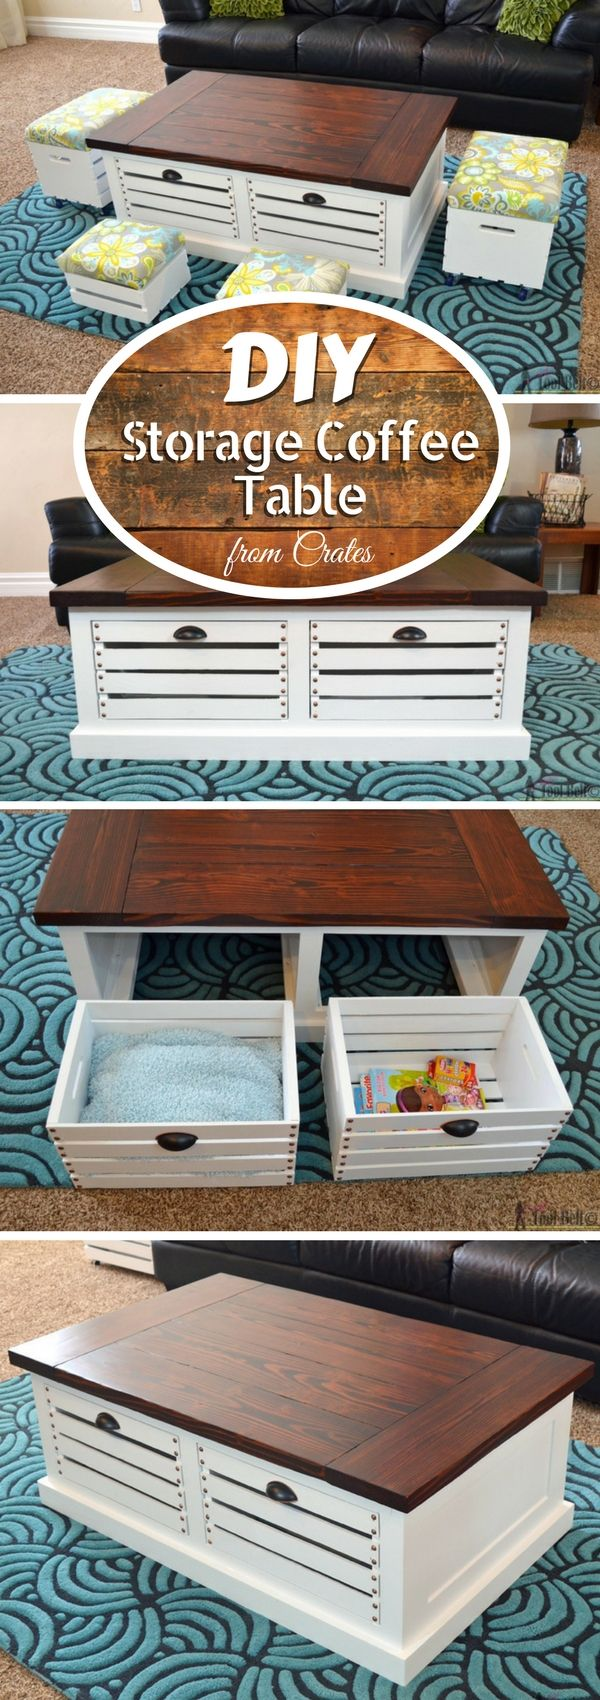 Check out how to build this easy DIY storage coffee table with stools from crates @istandarddesign